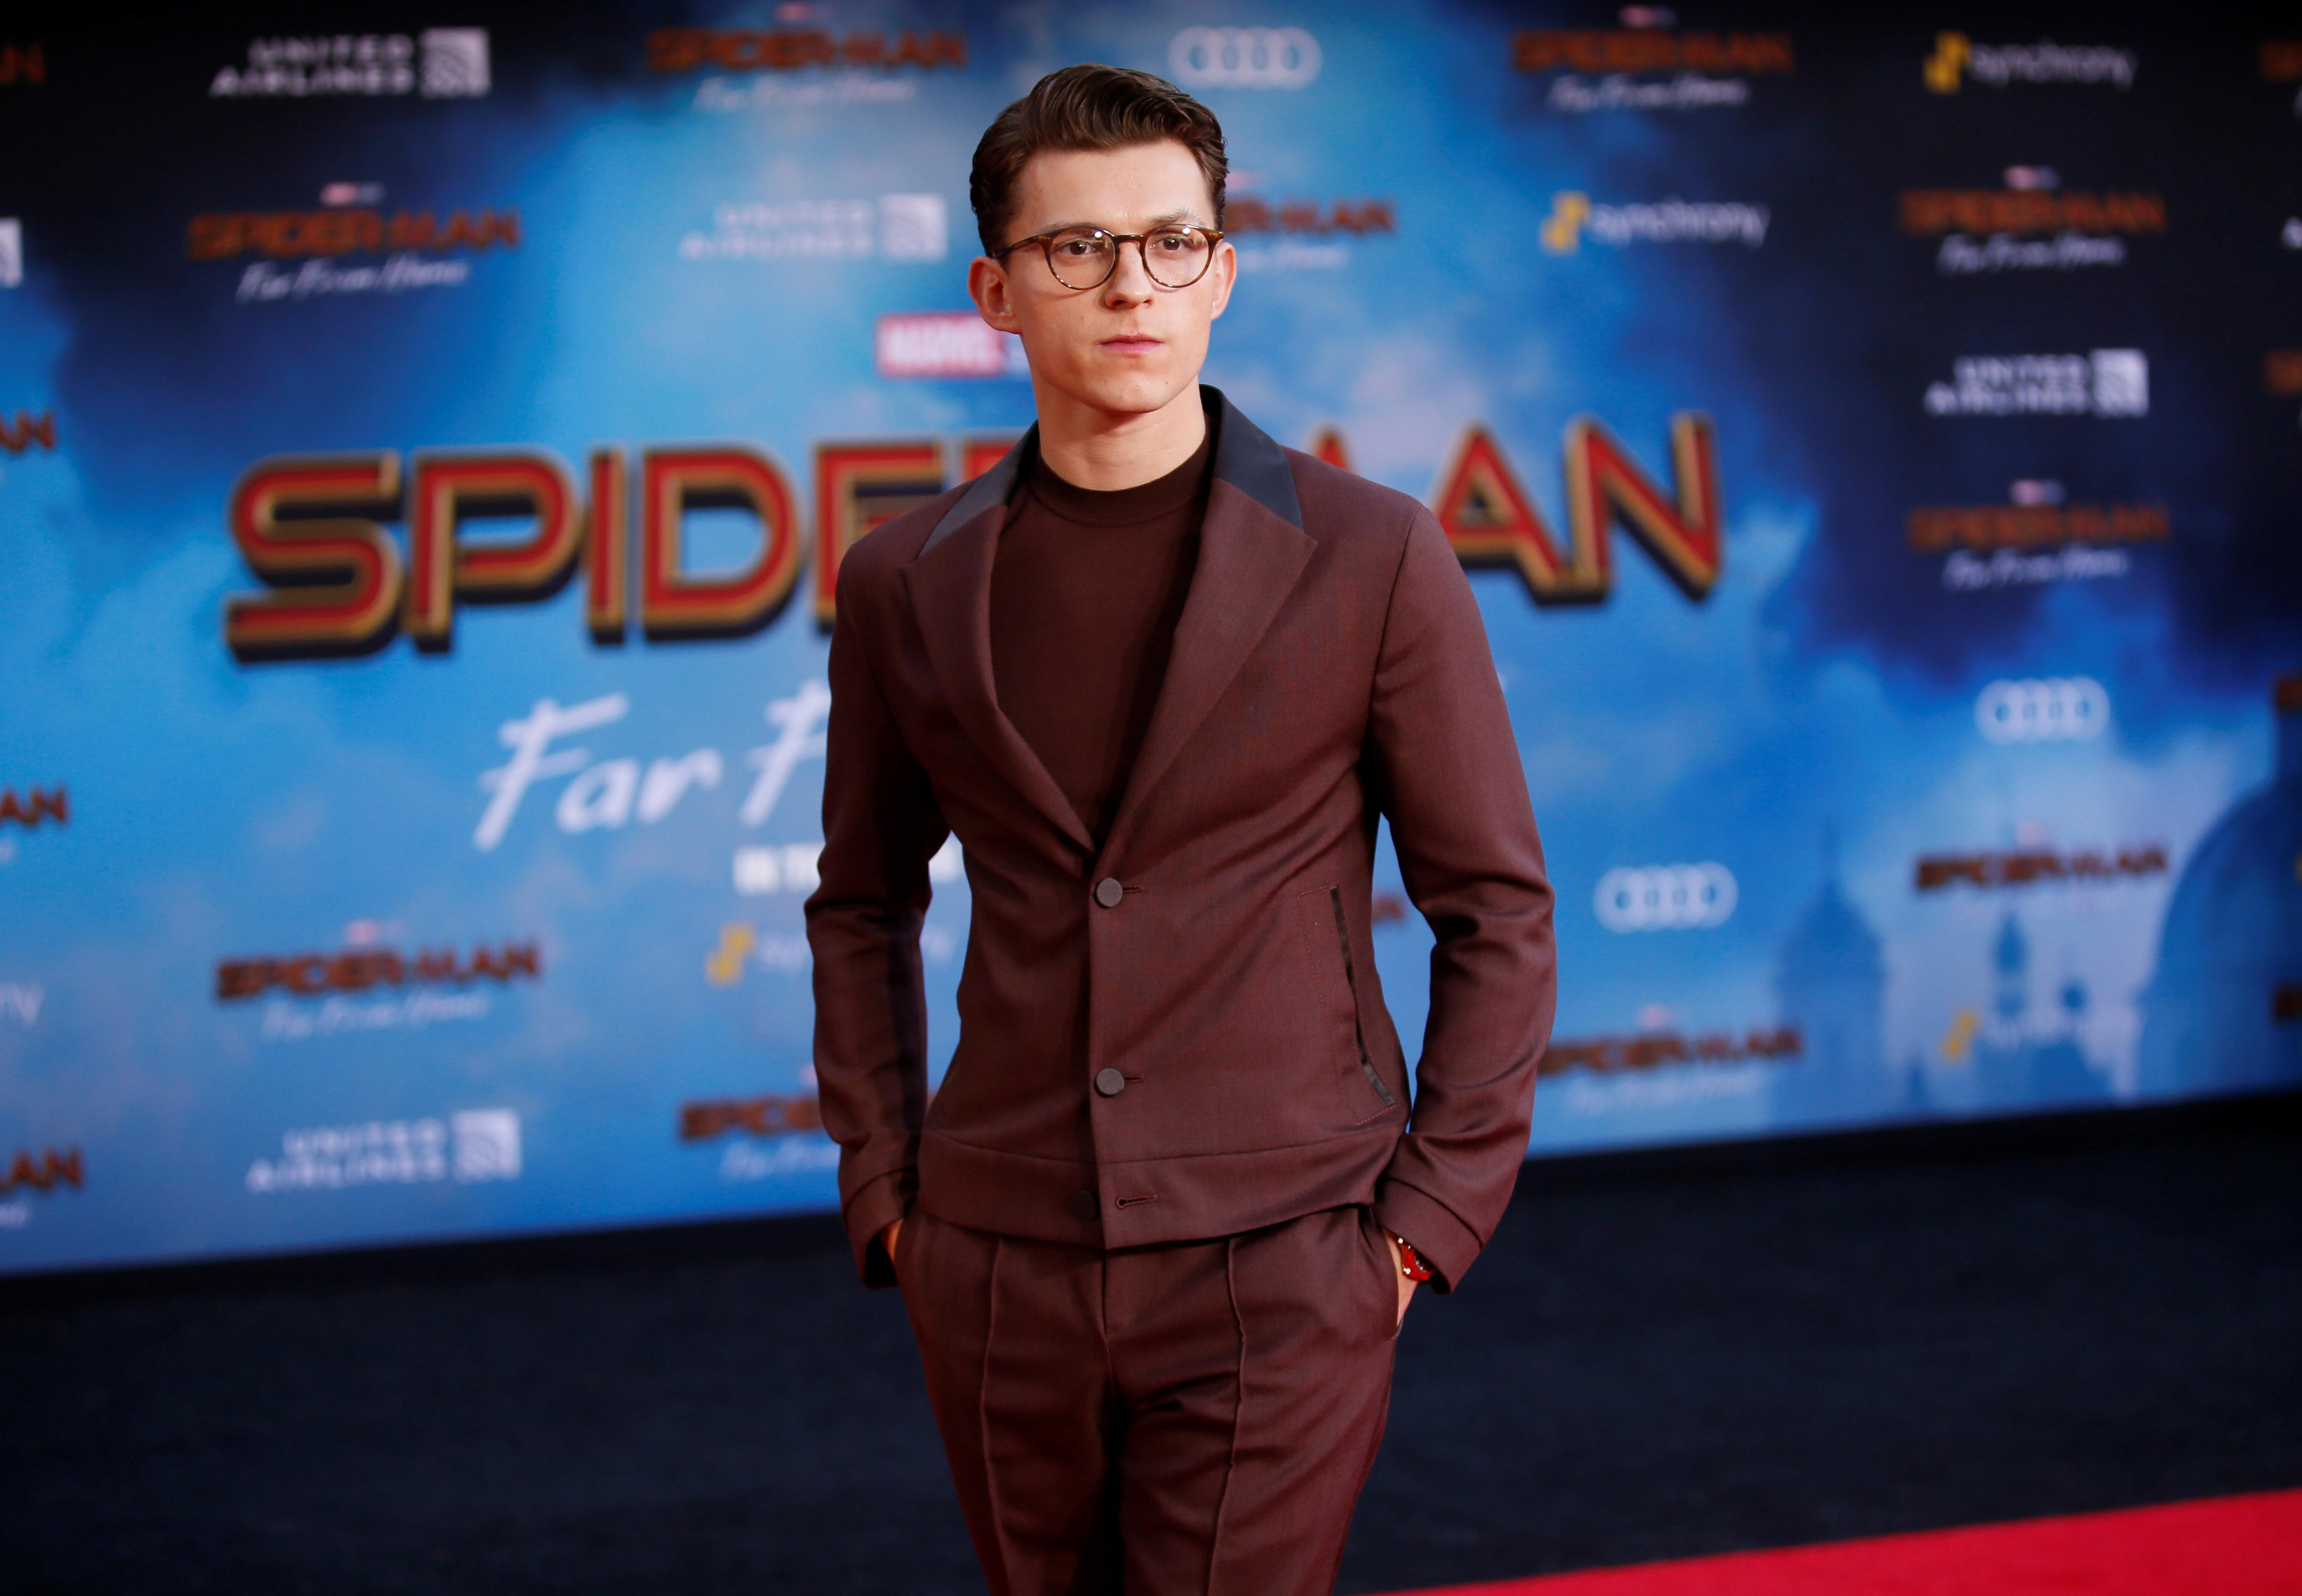 'Spider-Man' star Tom Holland addresses his 'crazy week' with a classic Marvel movie quote